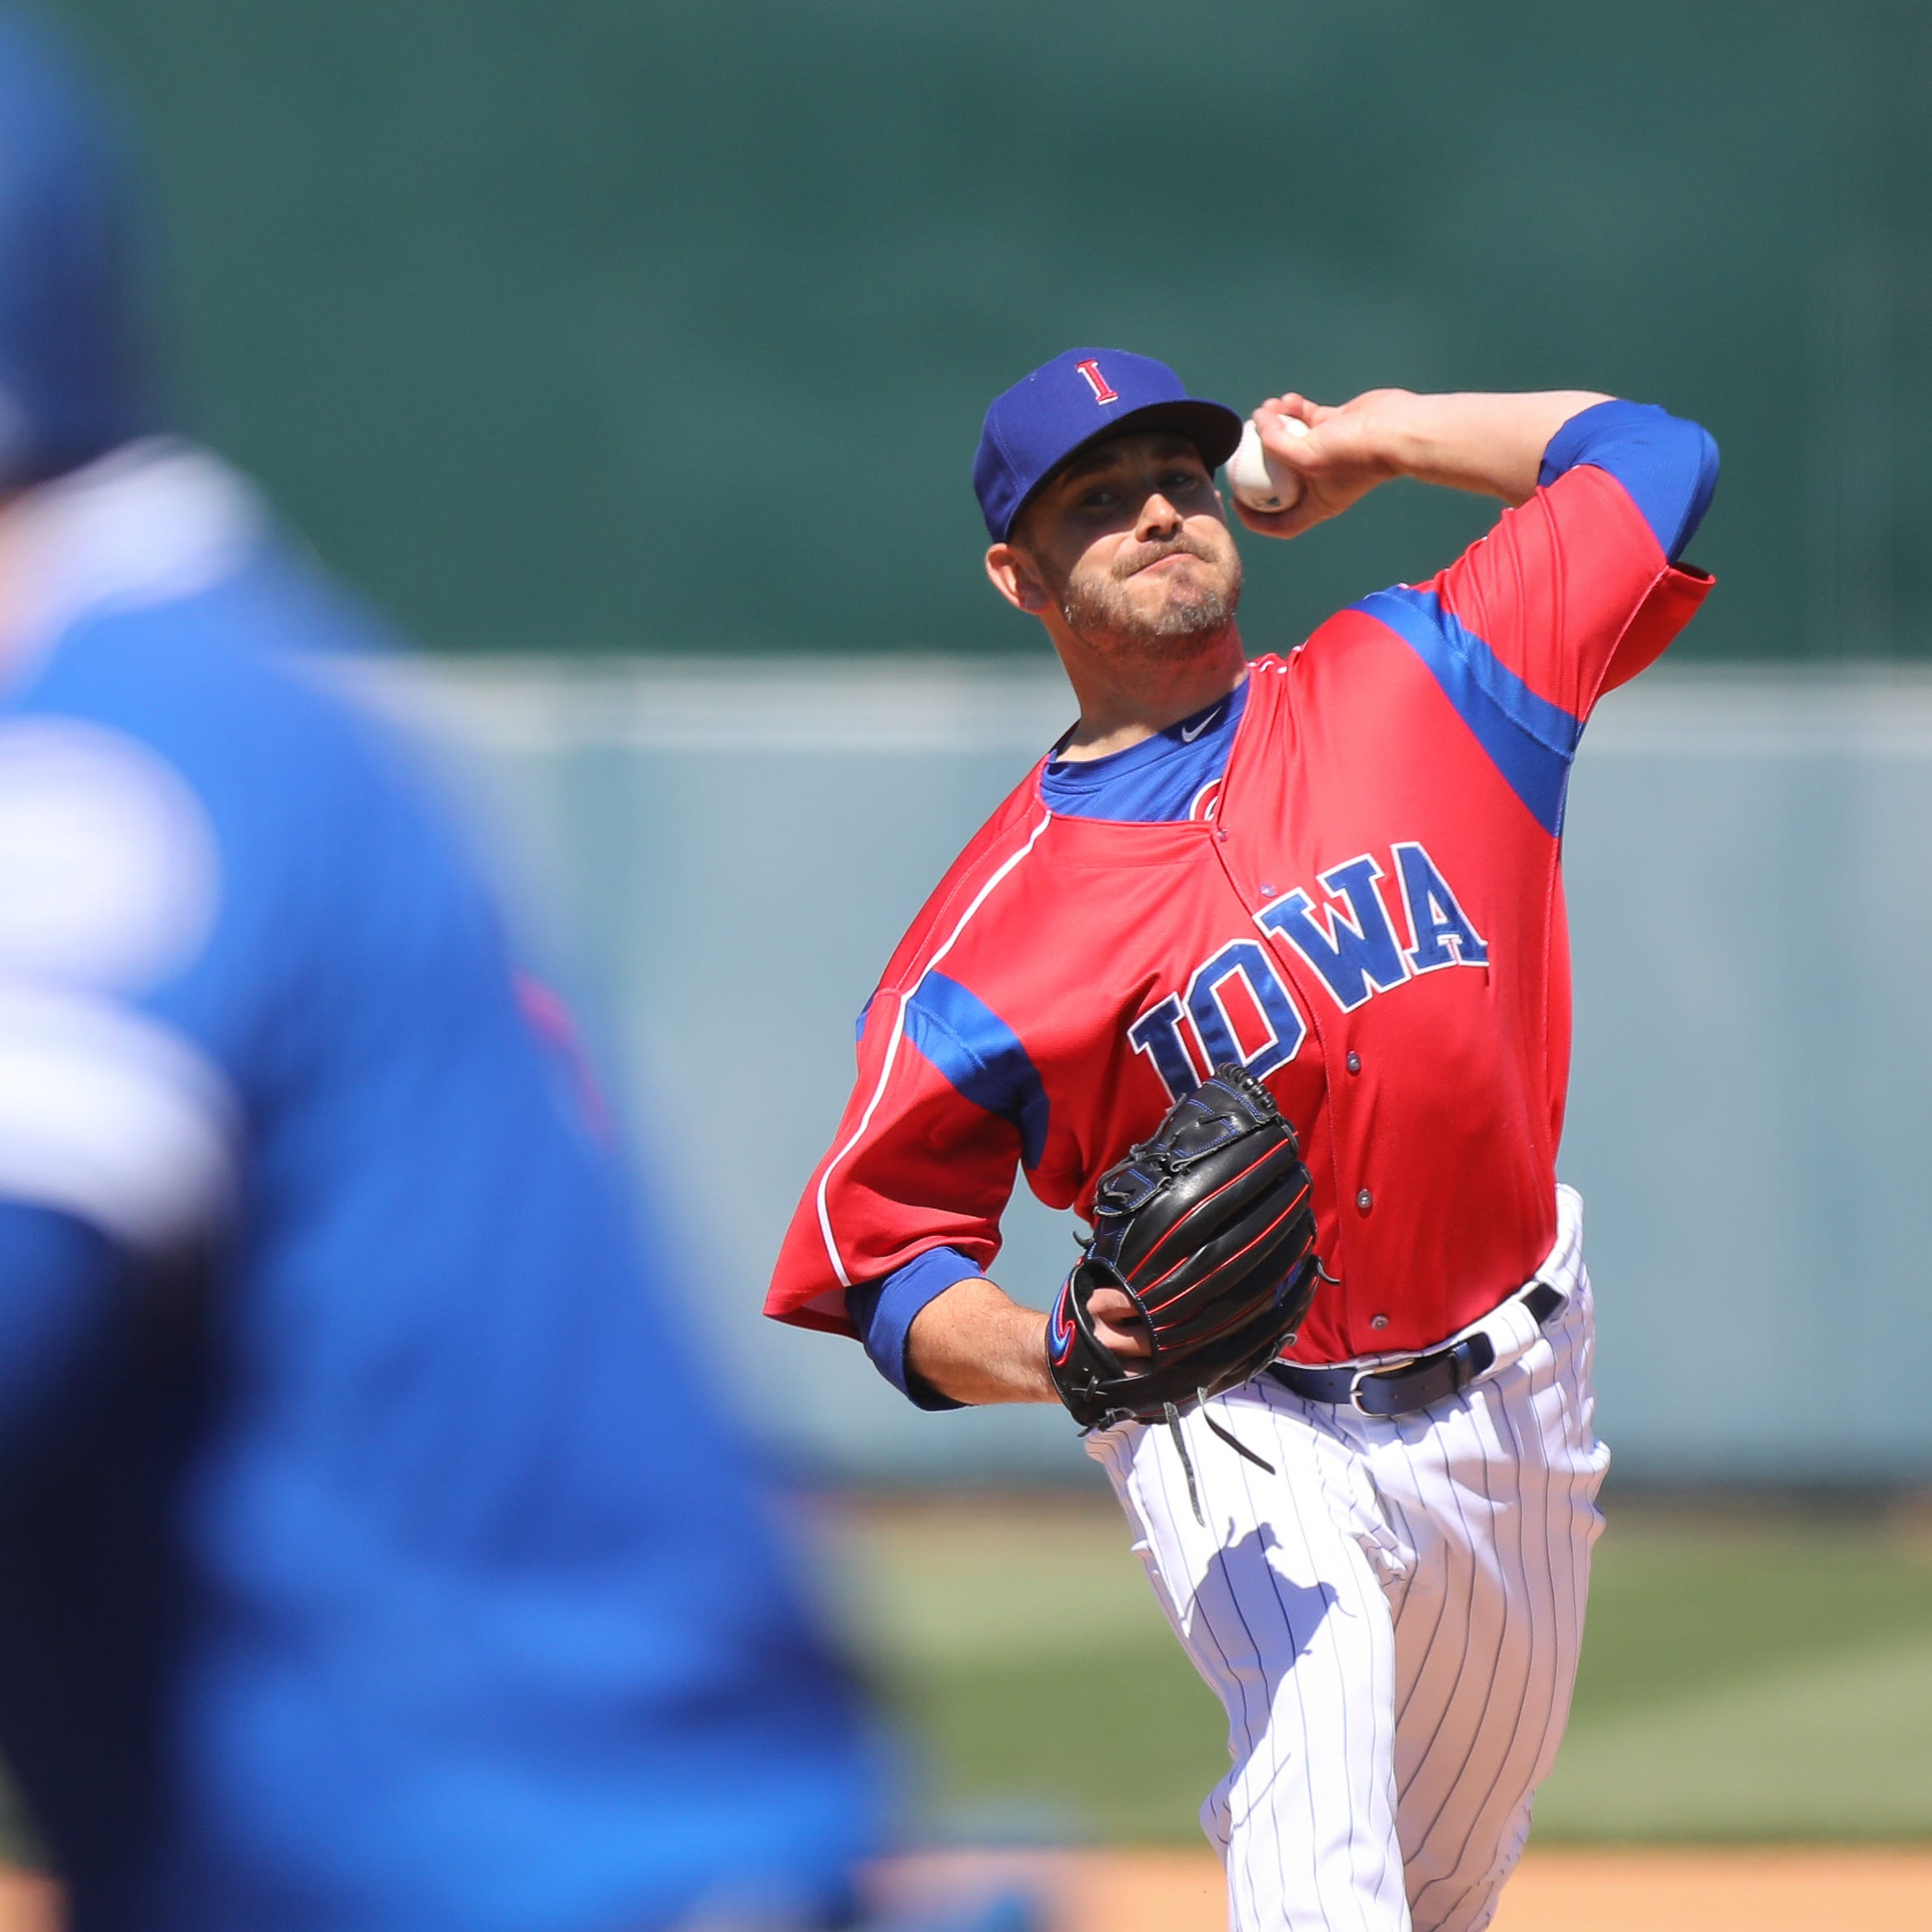 MLB veteran Brian Duensing starting over with the Iowa Cubs